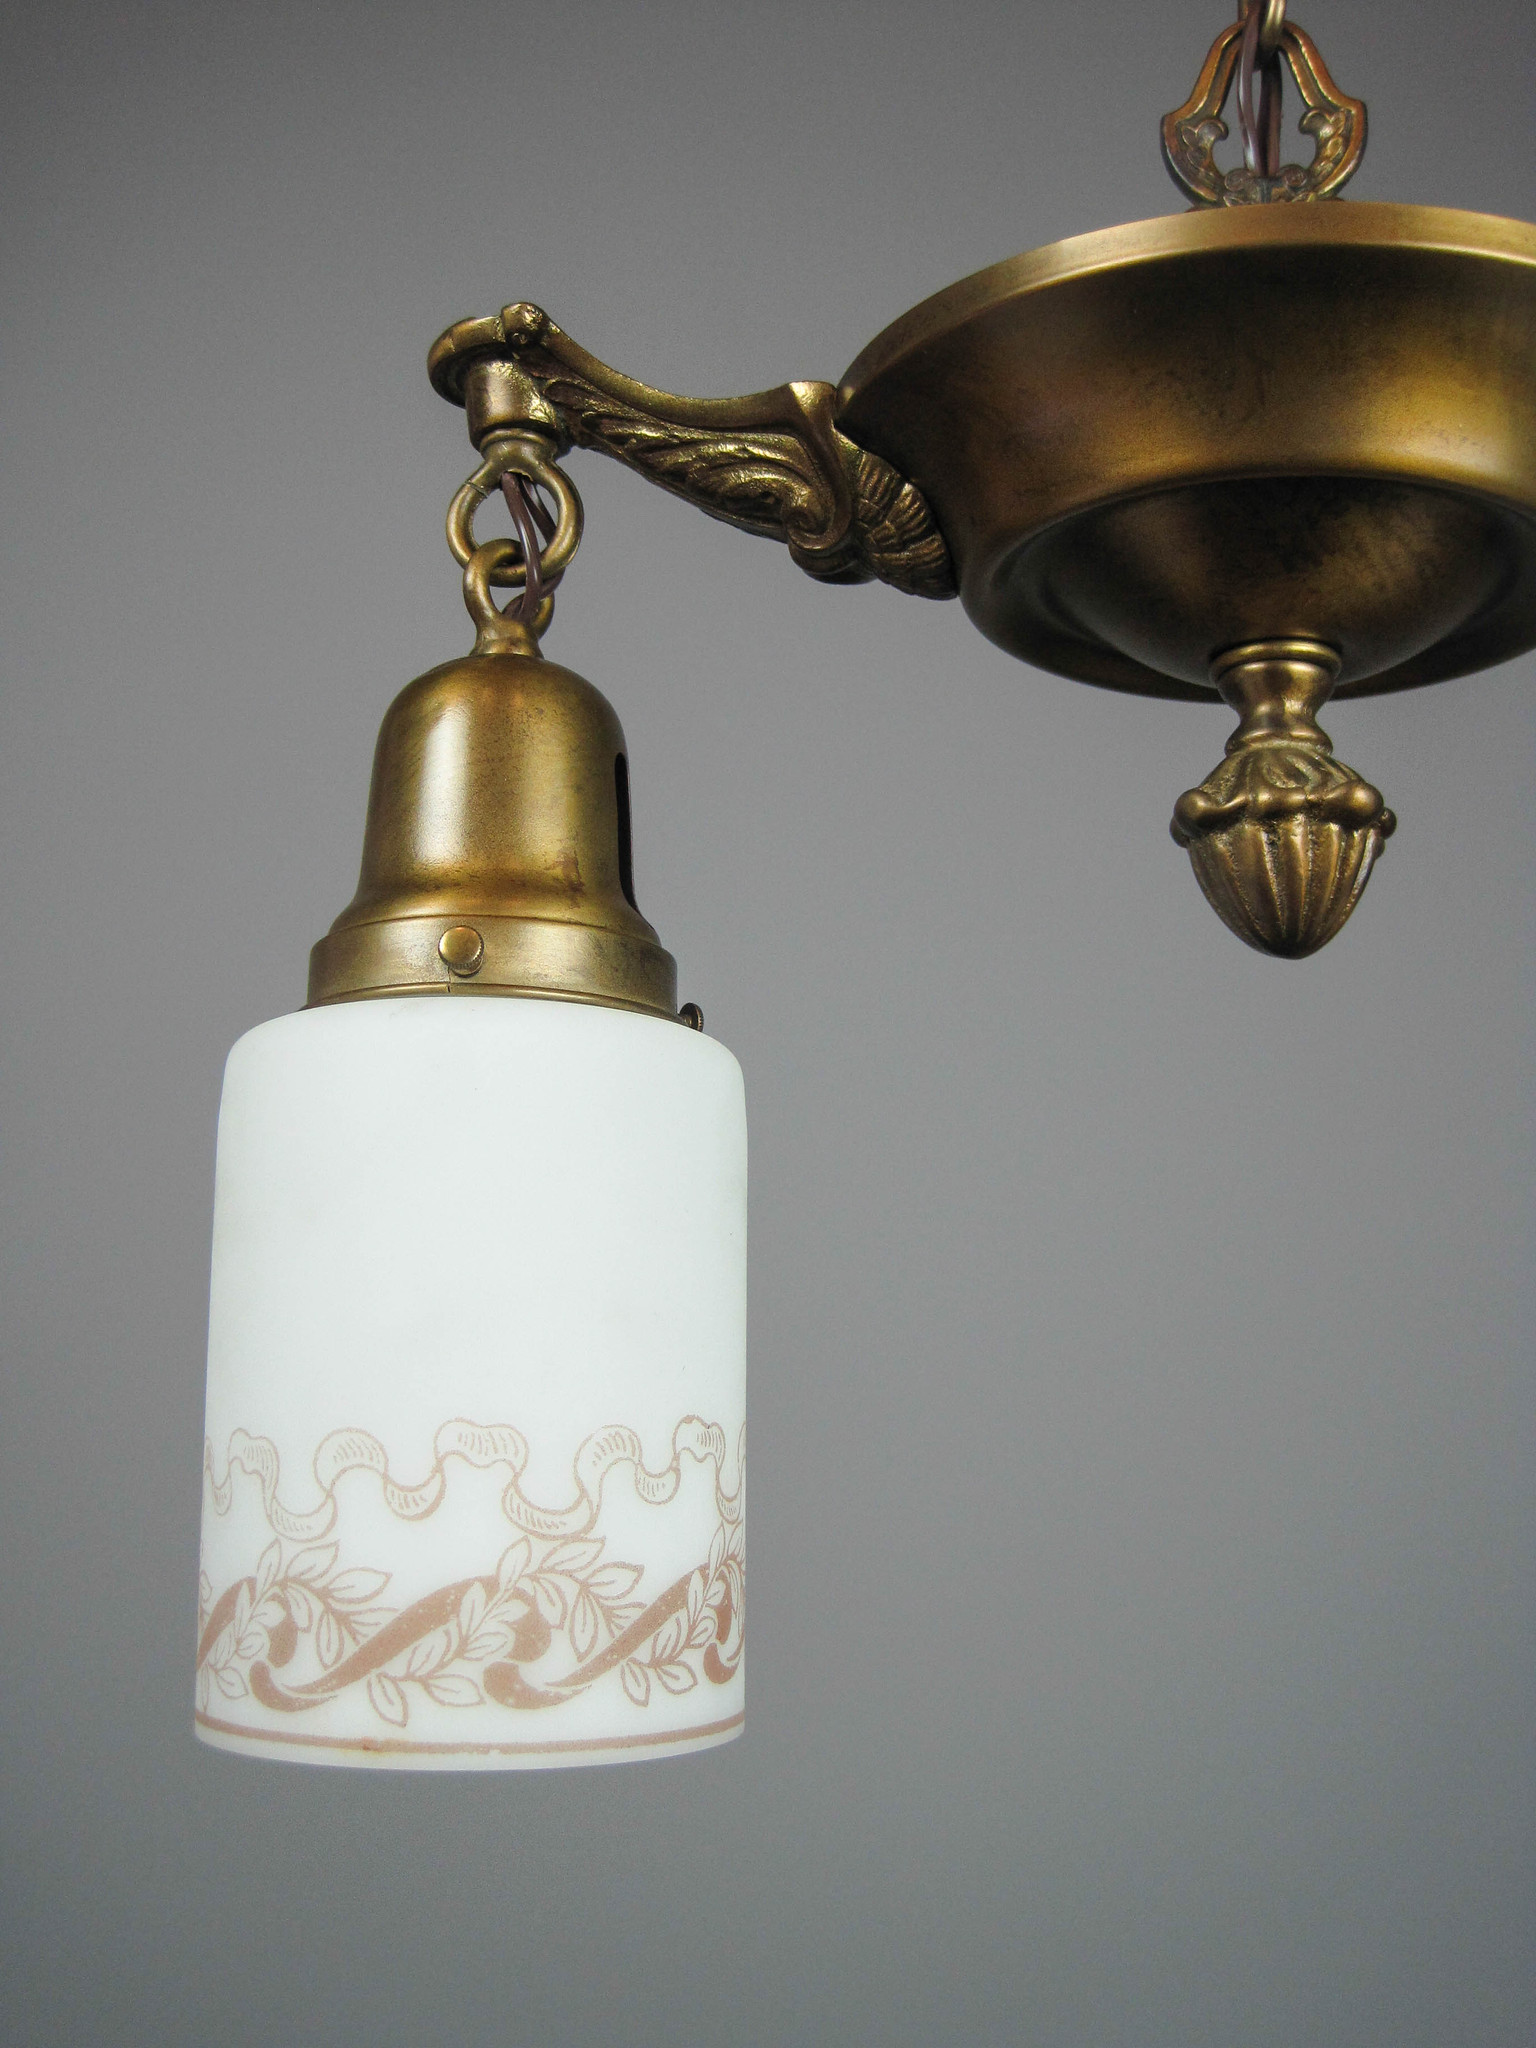 Original Pan Light Fixture With Antique Shades 2 Light